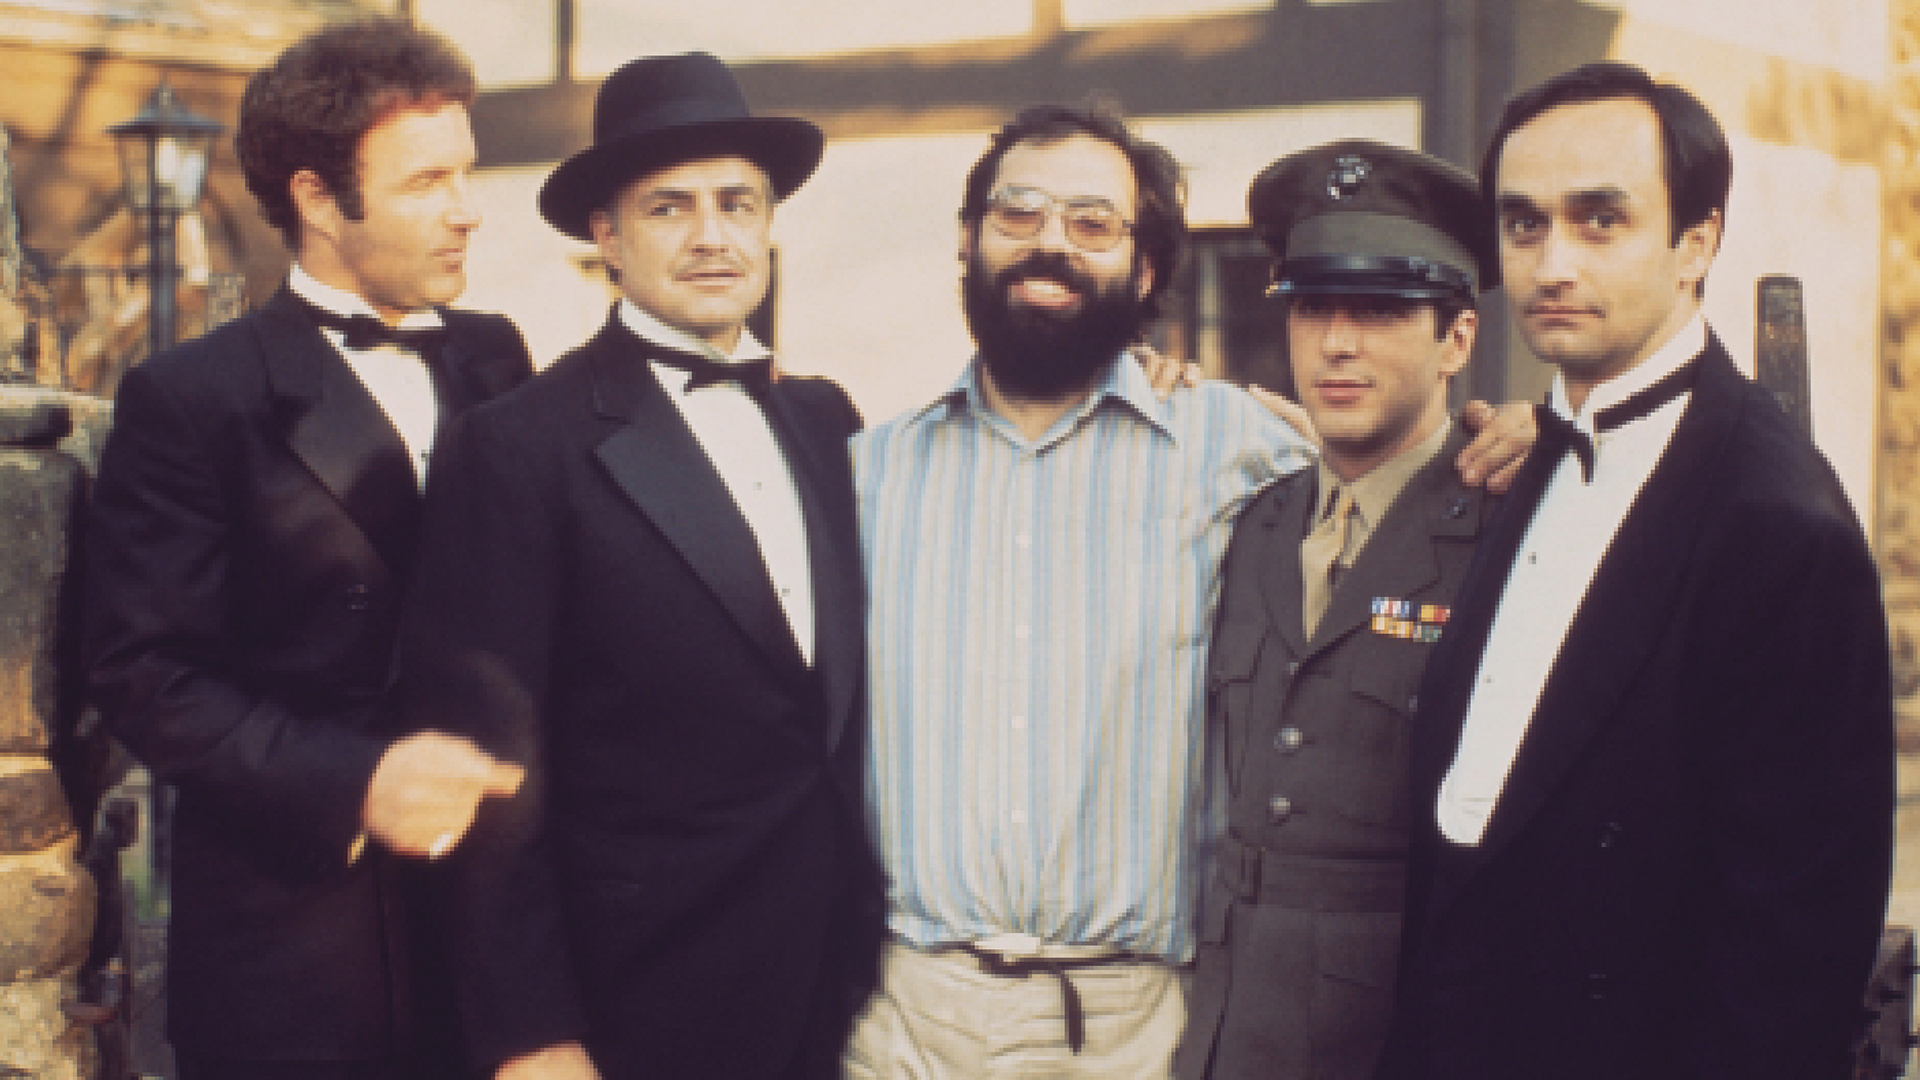 """<p><a href=""""http://https://tribecafilm.com/filmguide/godfather-the-godfather-part-ii-2017"""" target=""""_blank"""">THE GODFATHER </a>OF ALL RENUNIONS</p>"""